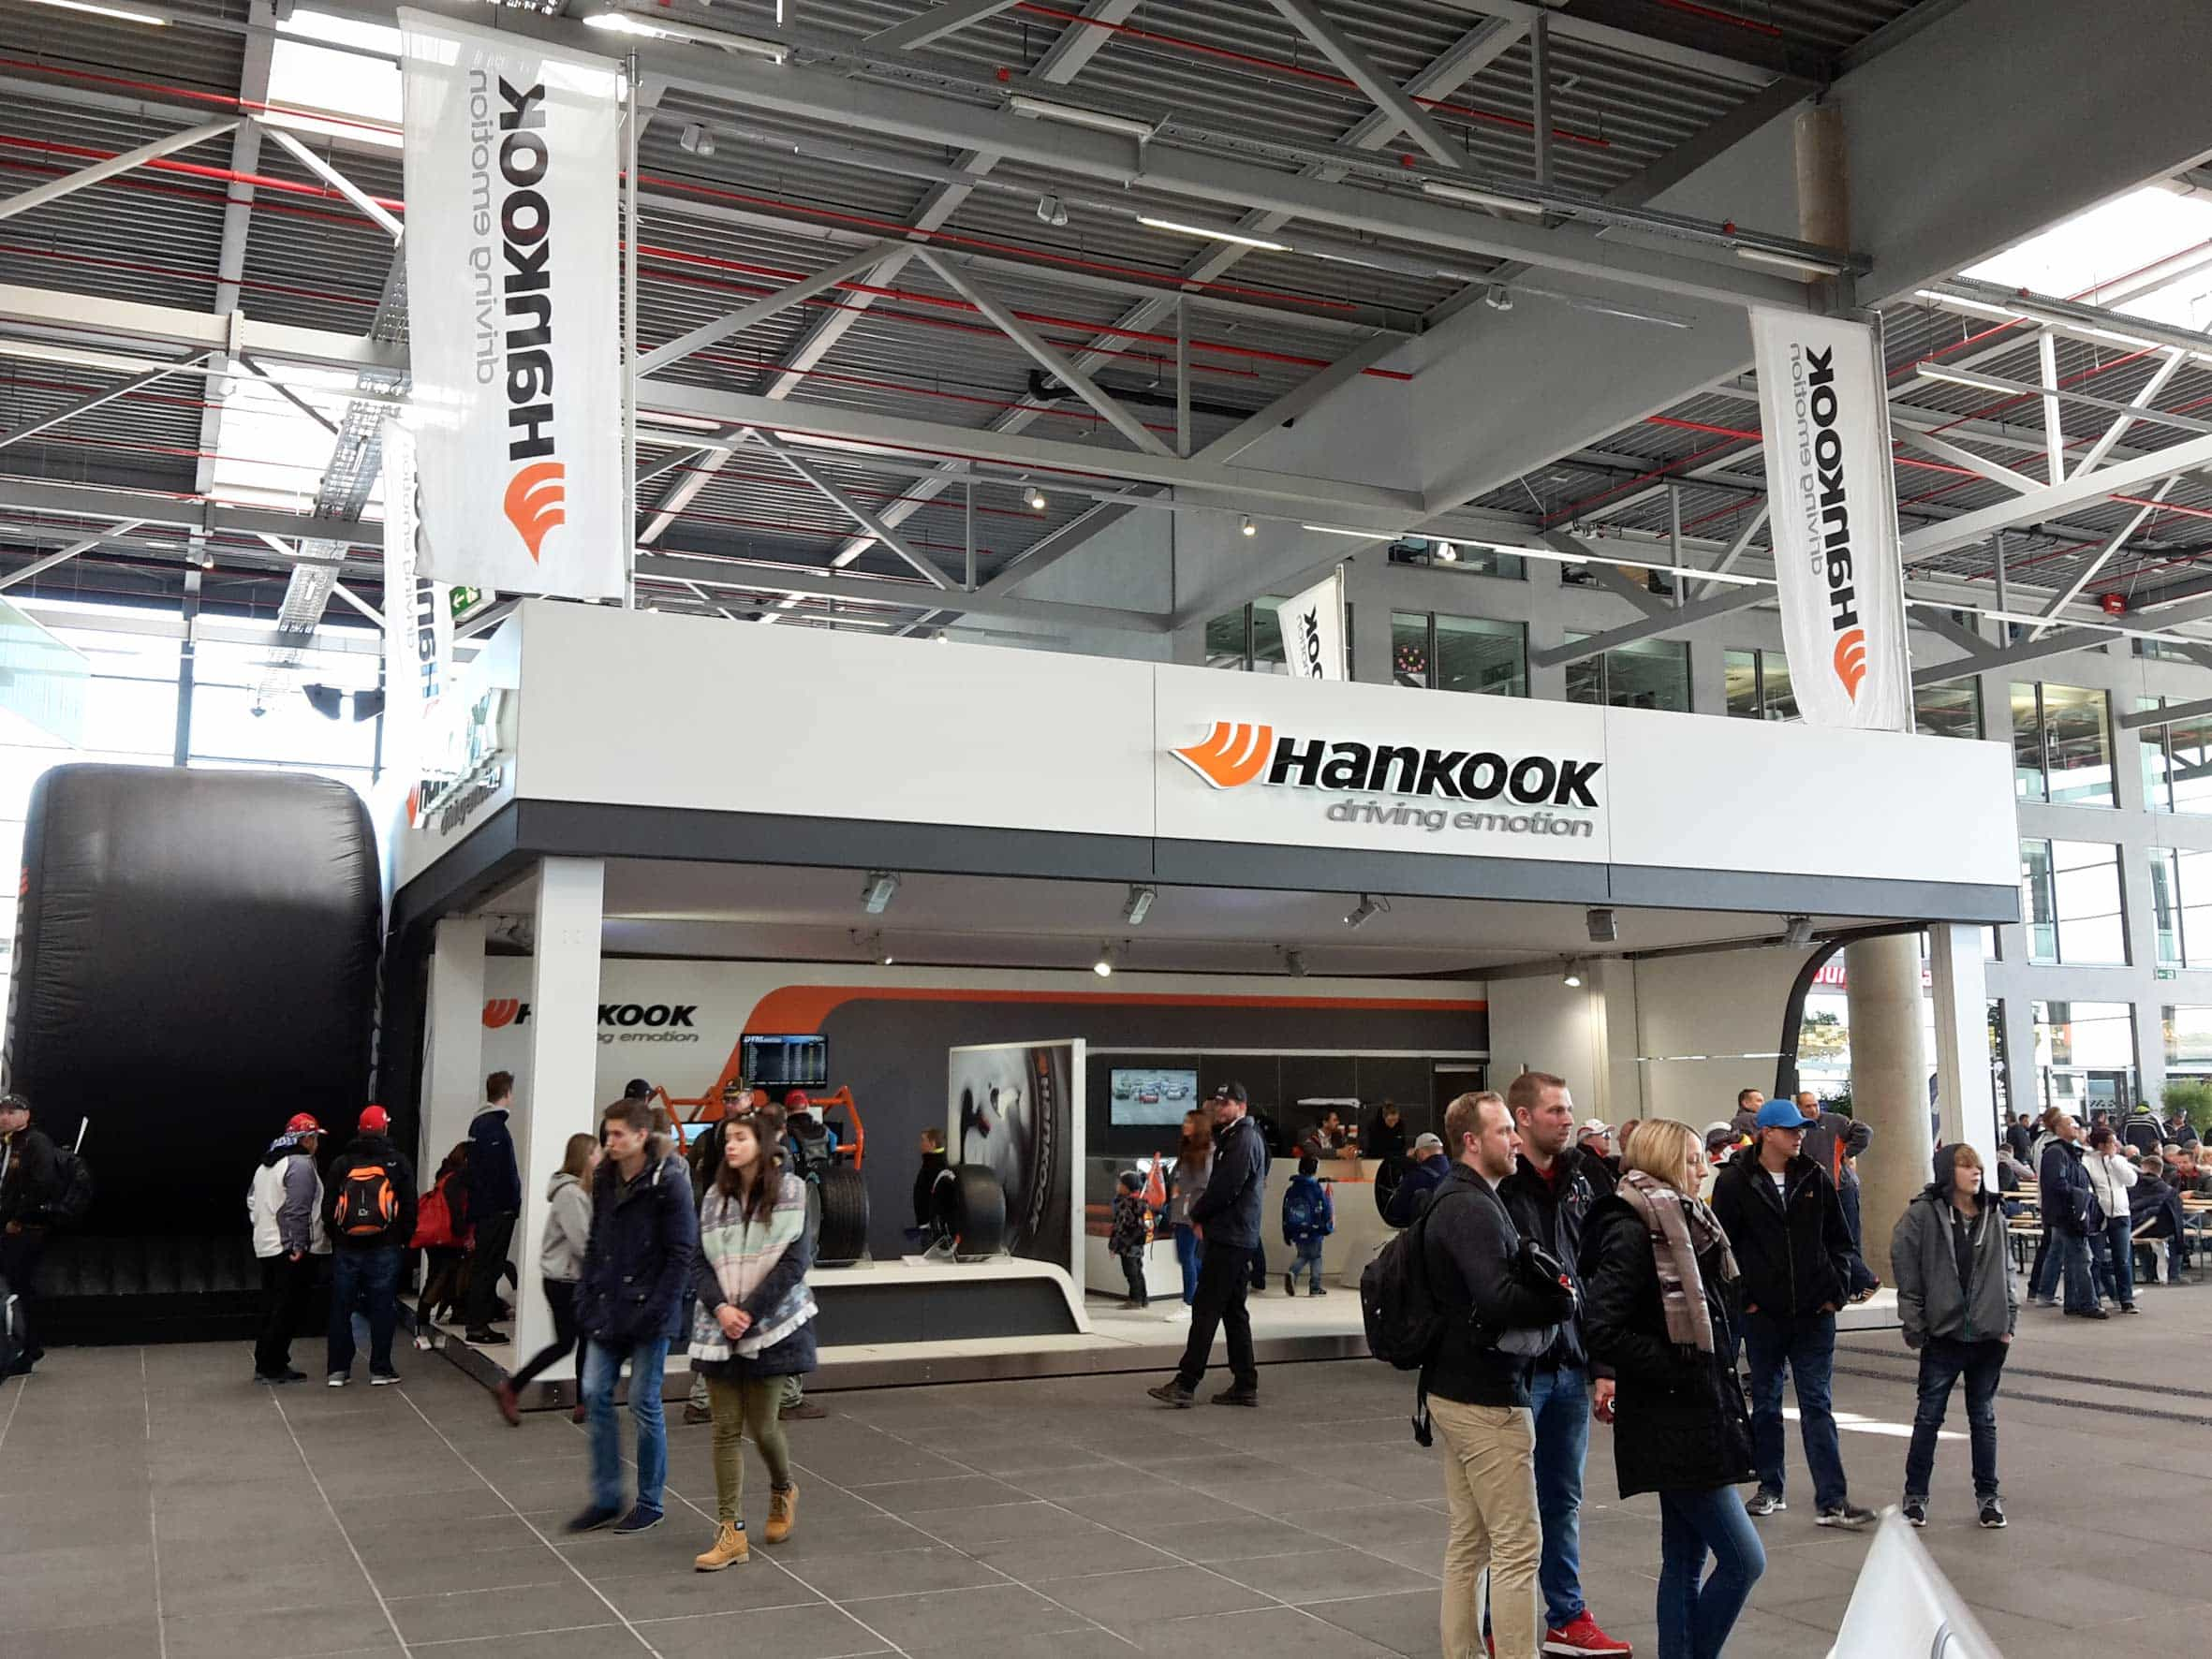 Hankook brandworld 1